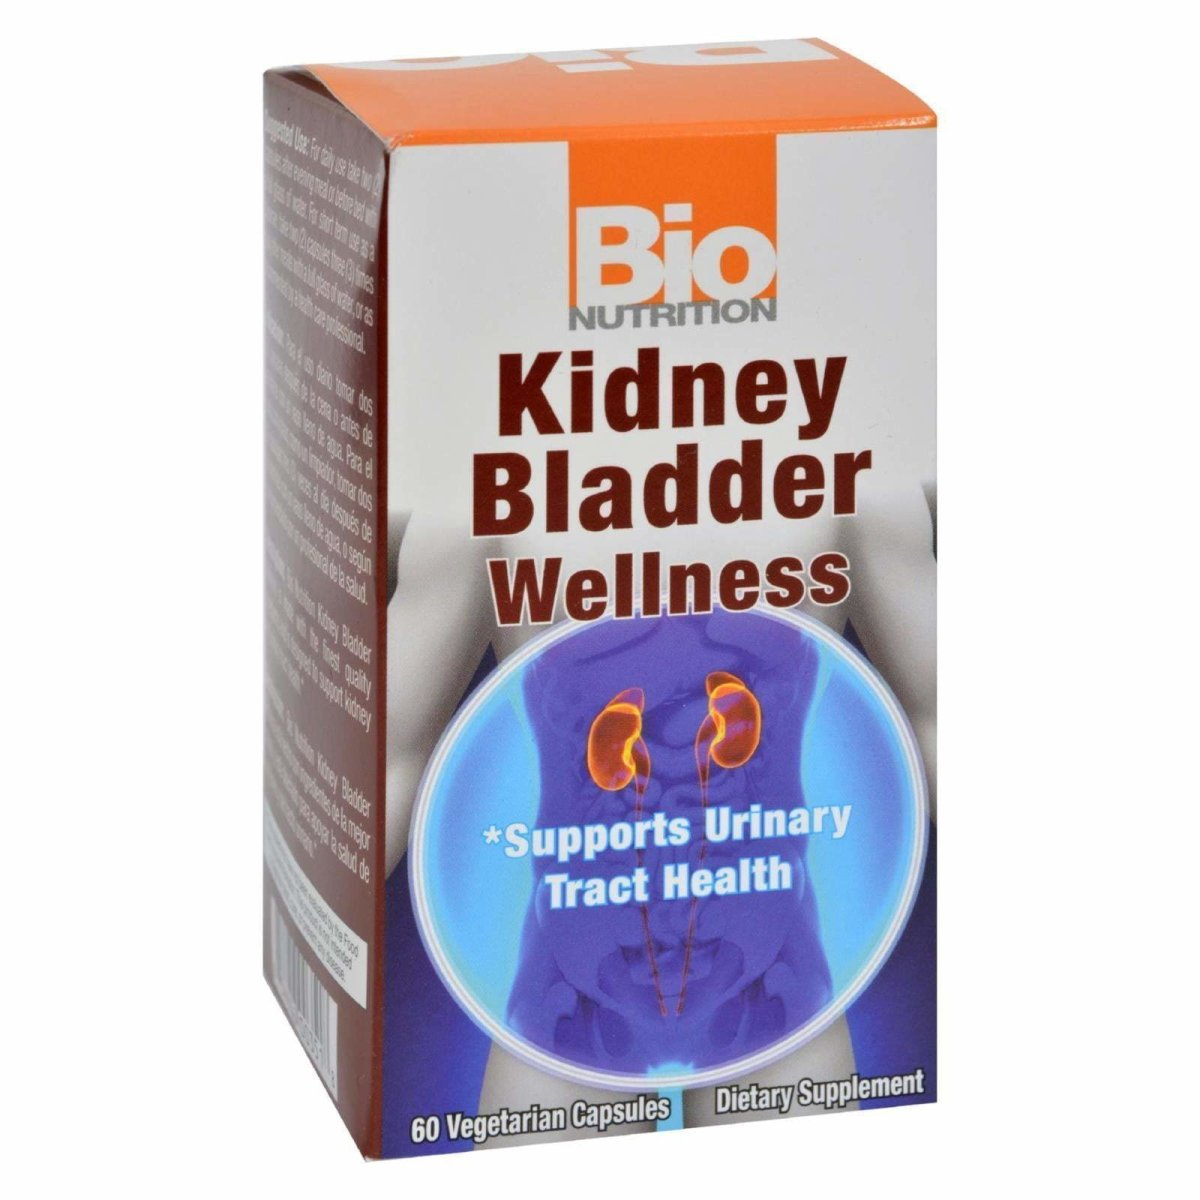 Bio Nutrition Kidney Bladder Wellness Vegi-Caps, 60 Count